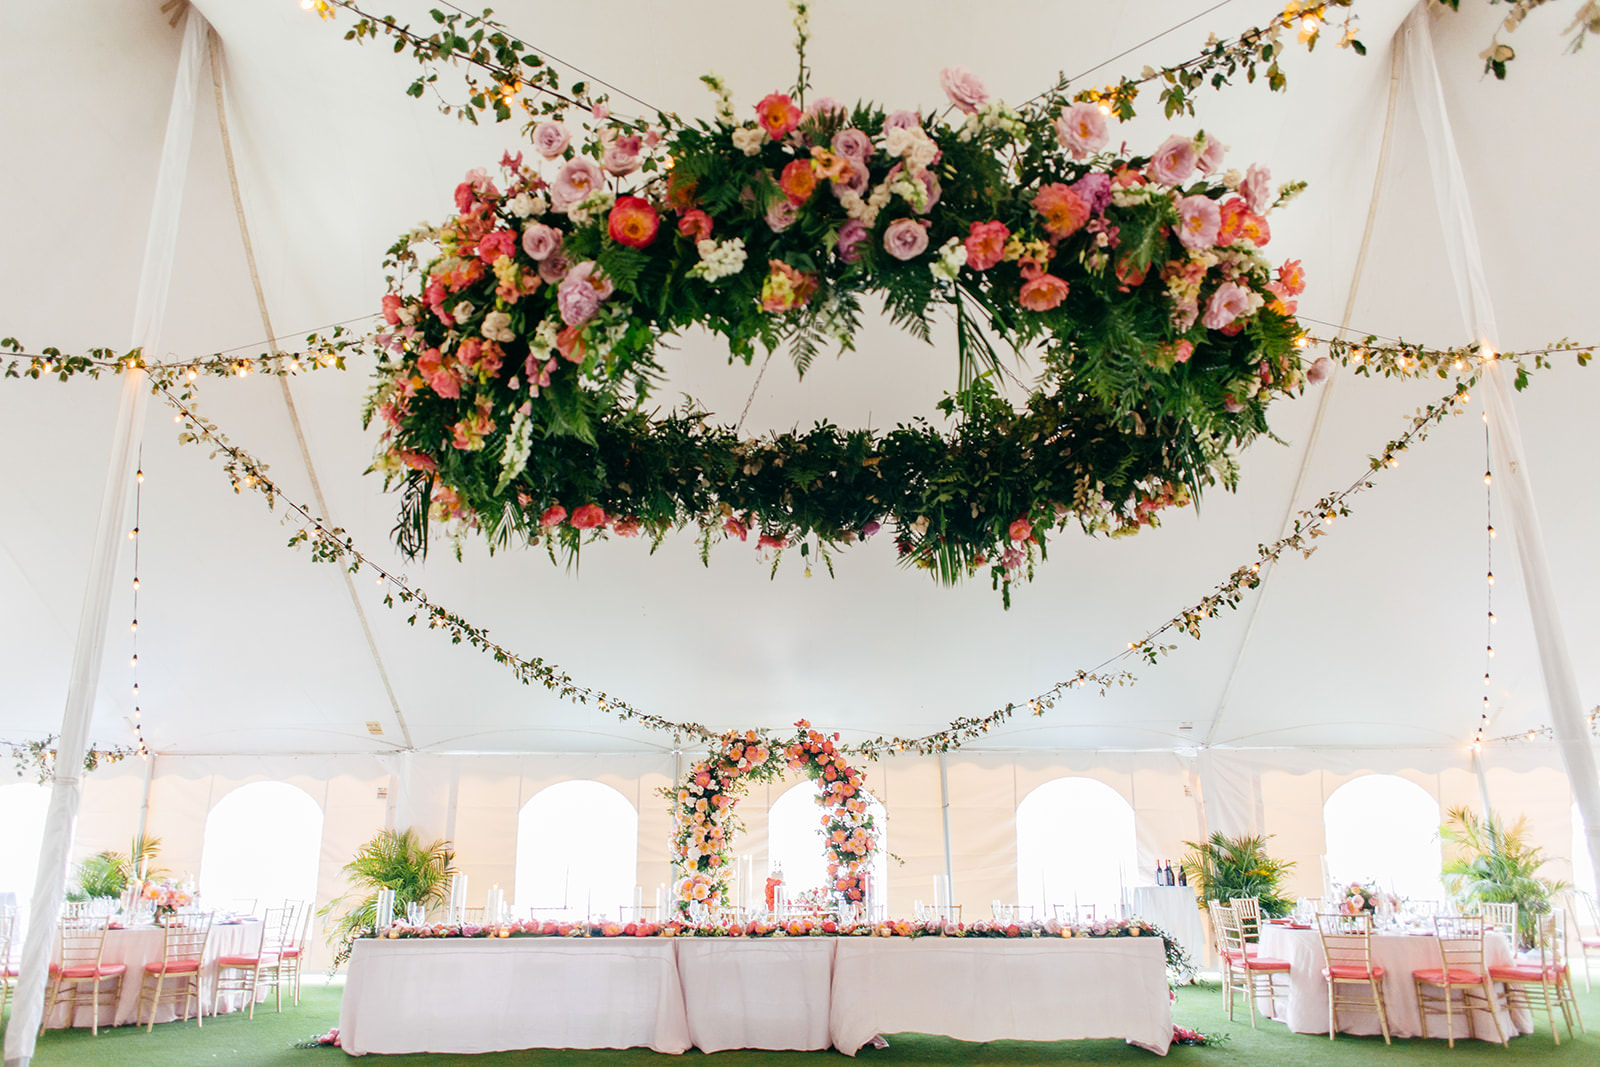 Tropical Elegant Tent Wedding Reception Decor, Lush Pink, Coral, Purple and Palm Tree Leaves Lush Floral Chandelier and Hanging Florals, Long Feasting Table with White Linens, Colorful Floral Arch Behind Sweetheart Table   Tampa Bay Wedding Planner NK Weddings